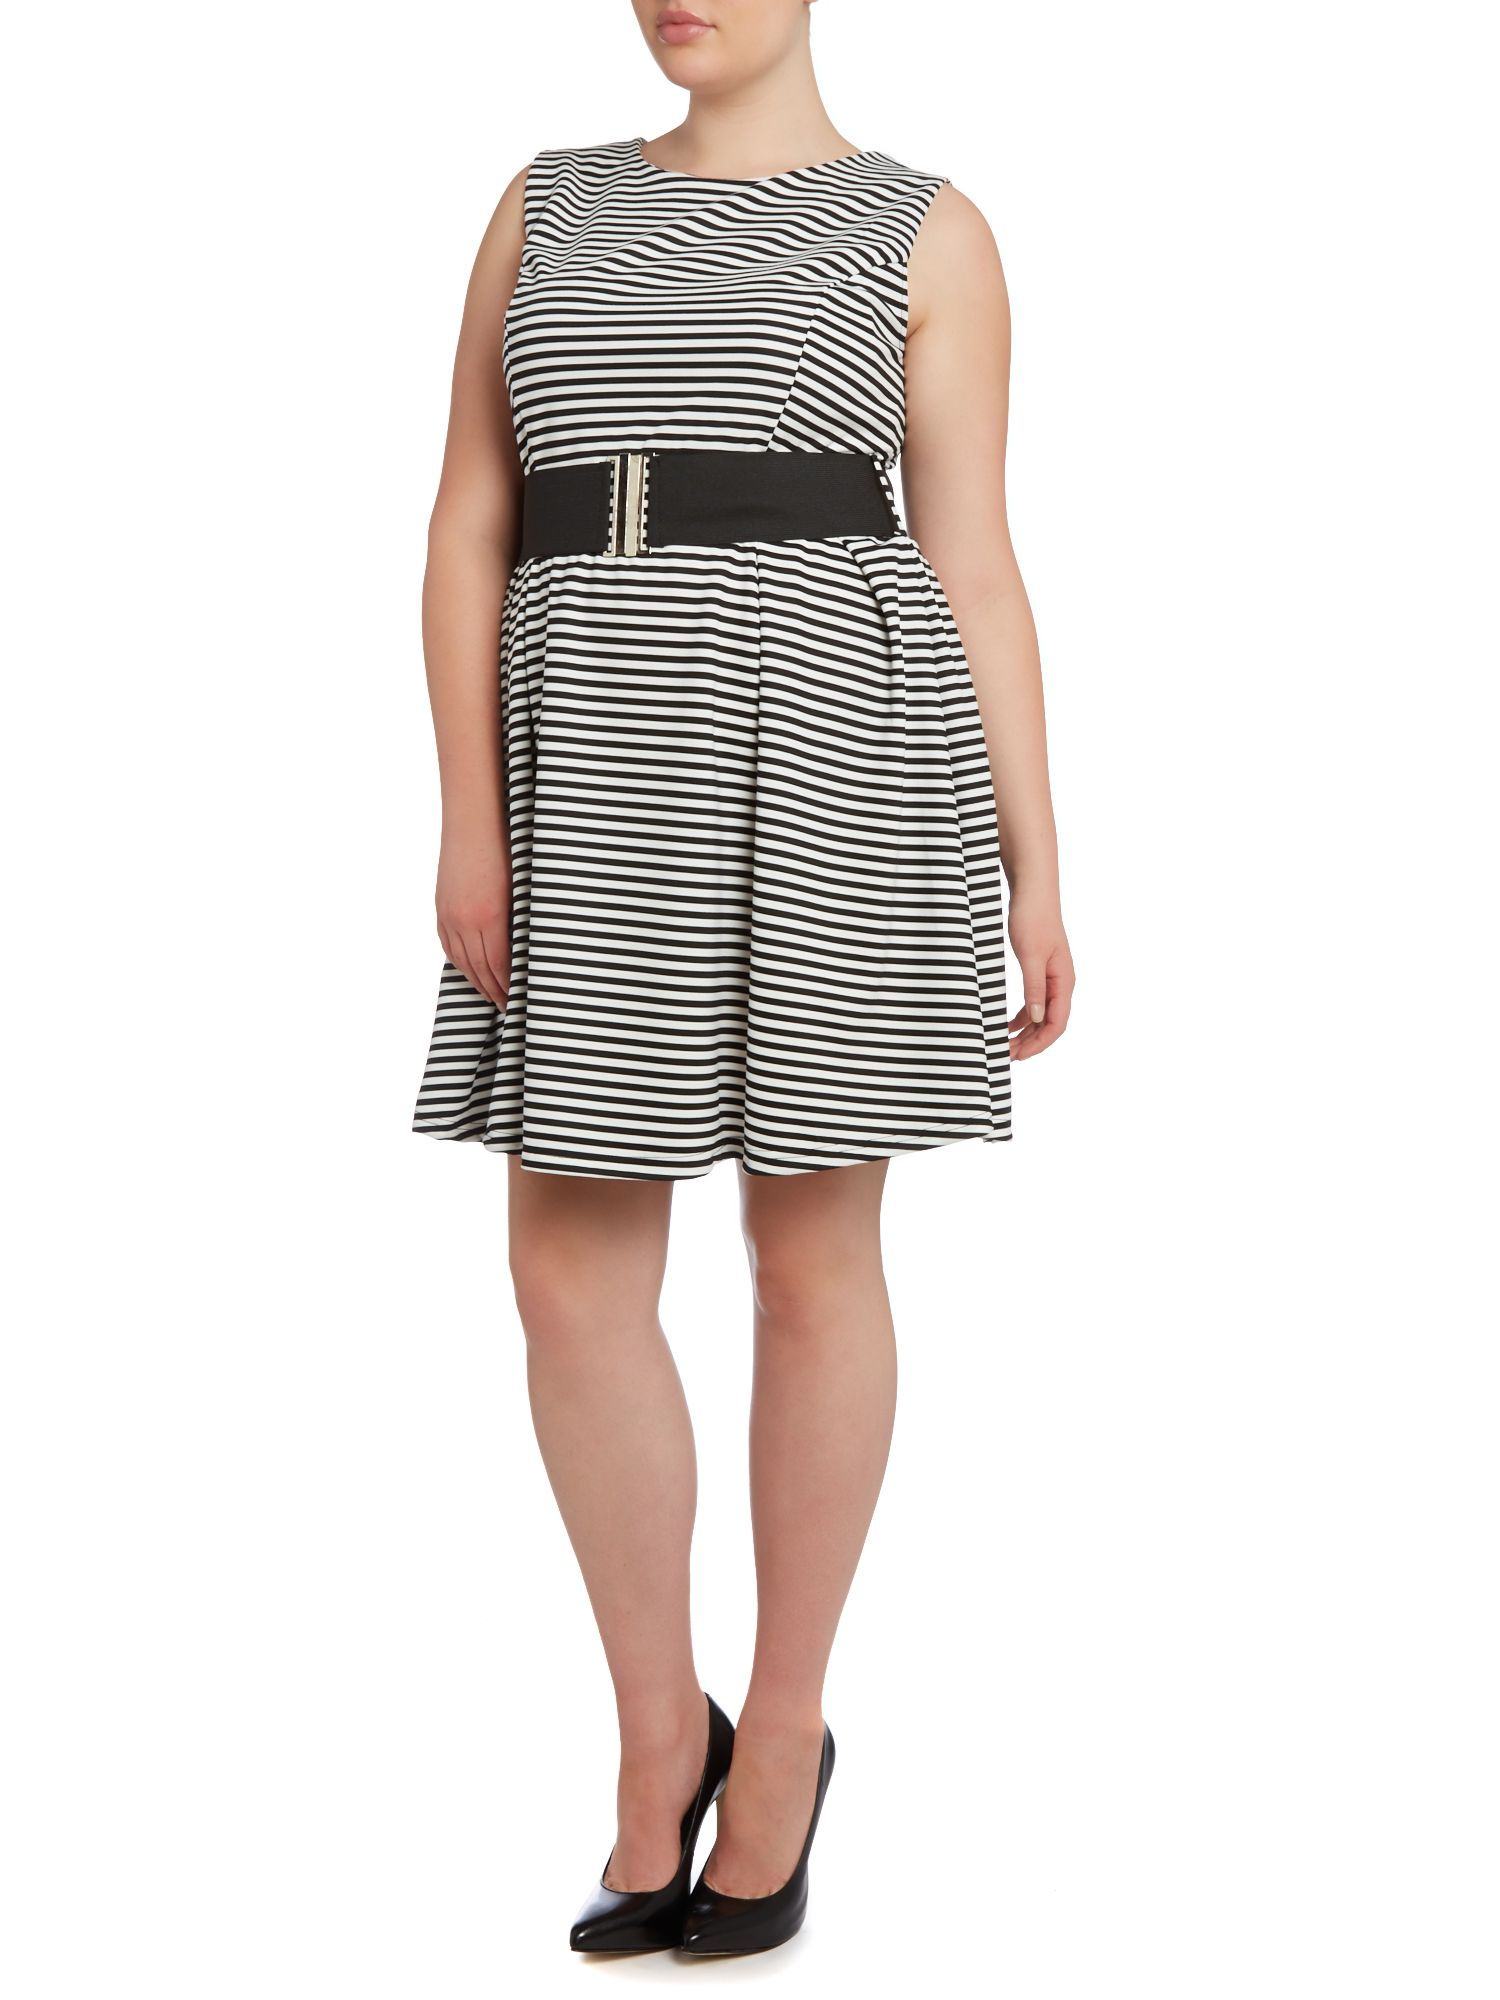 Horizontal striped skater dress